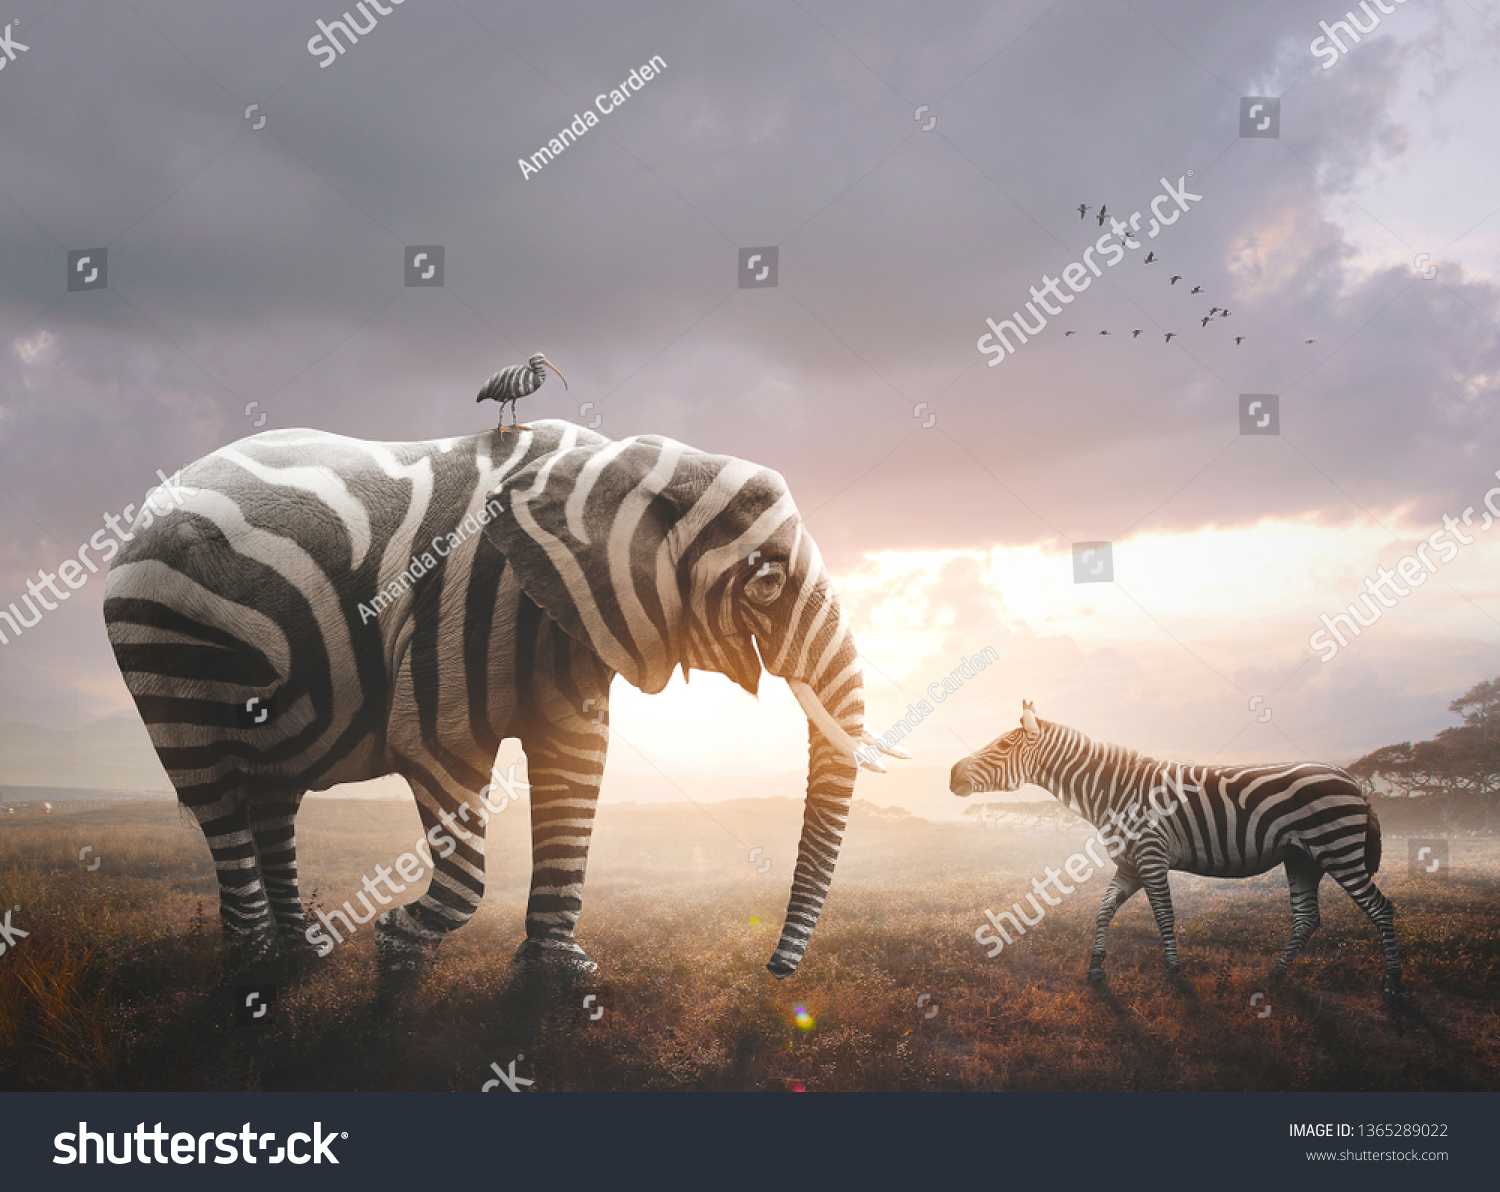 A surreal image of an African elephant wearing black and white zebra stripes #1365289022